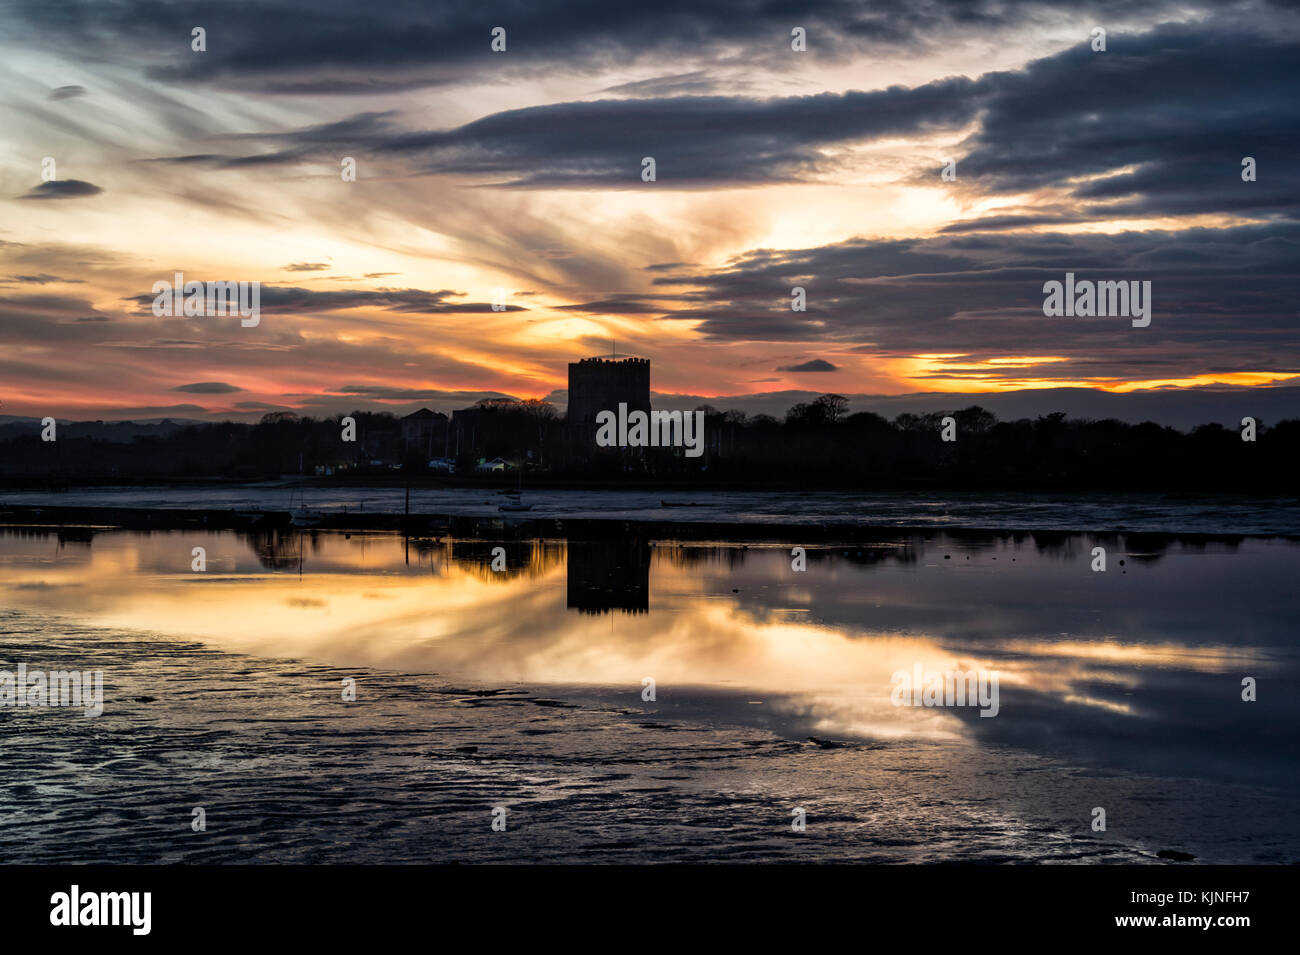 sillouette of Portchester castle at dusk with sunset, low tide. - Stock Image